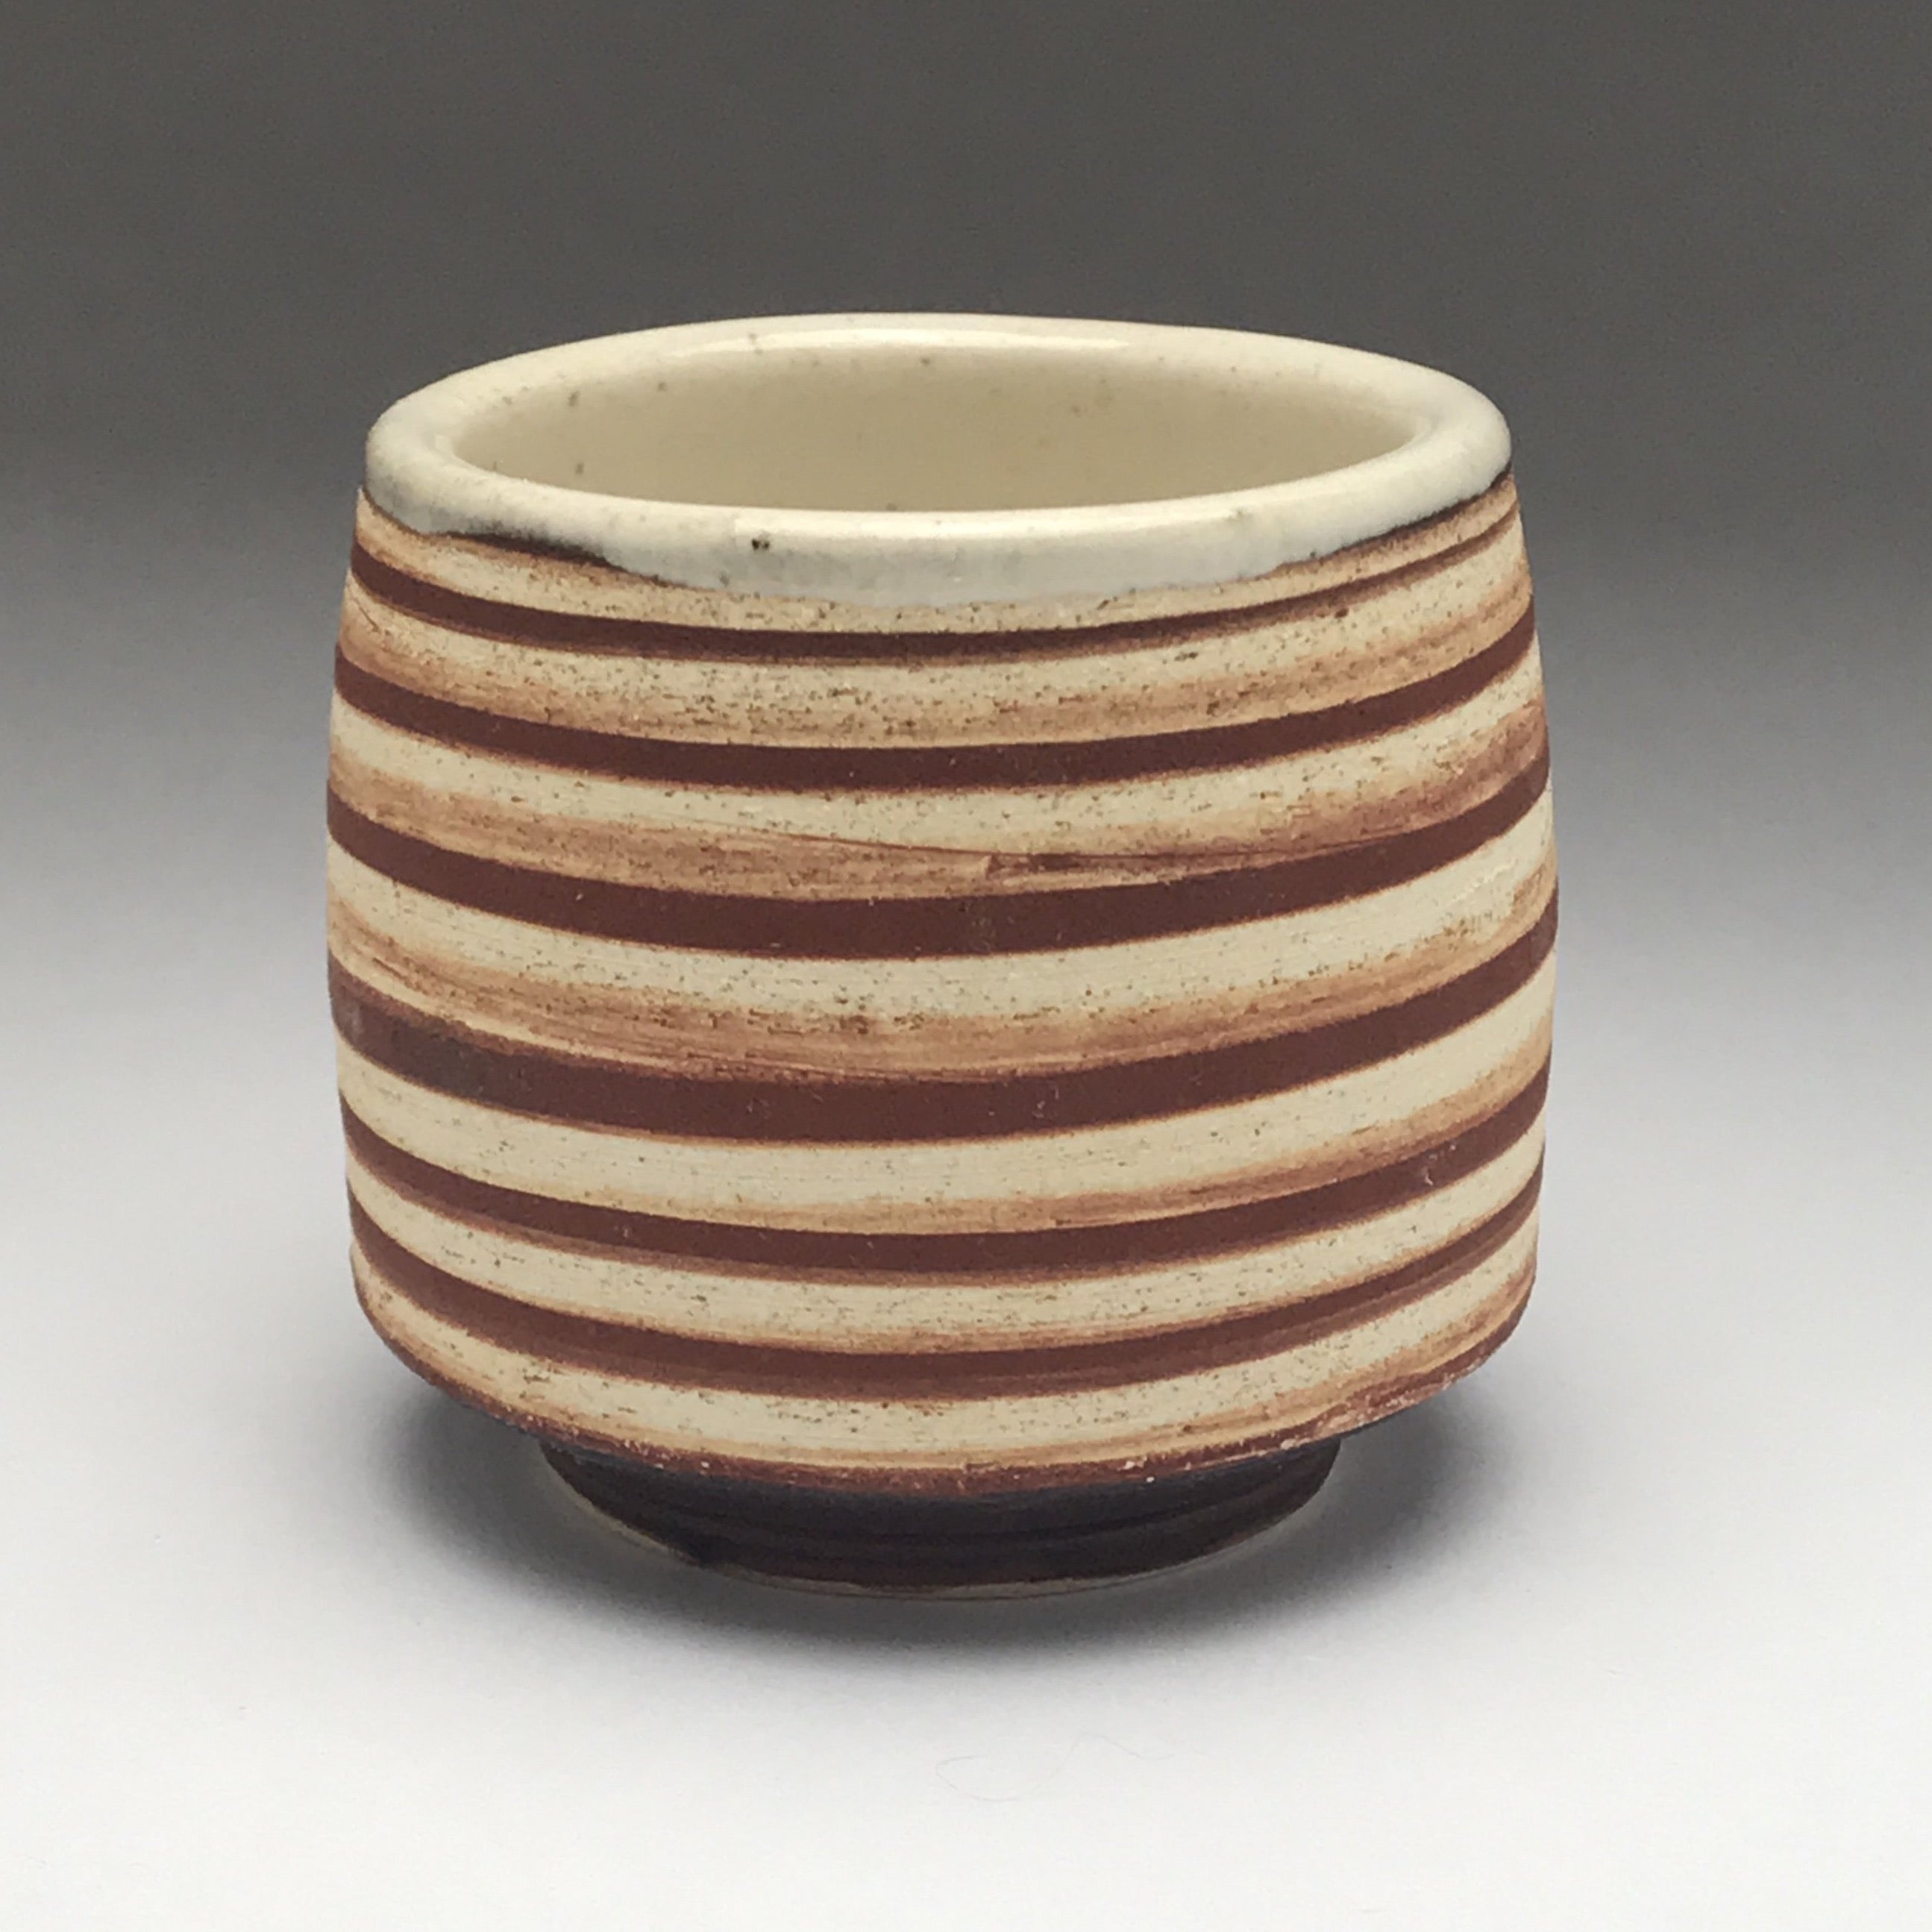 yunomi tea cup whiskey sipper with brown and white striped design